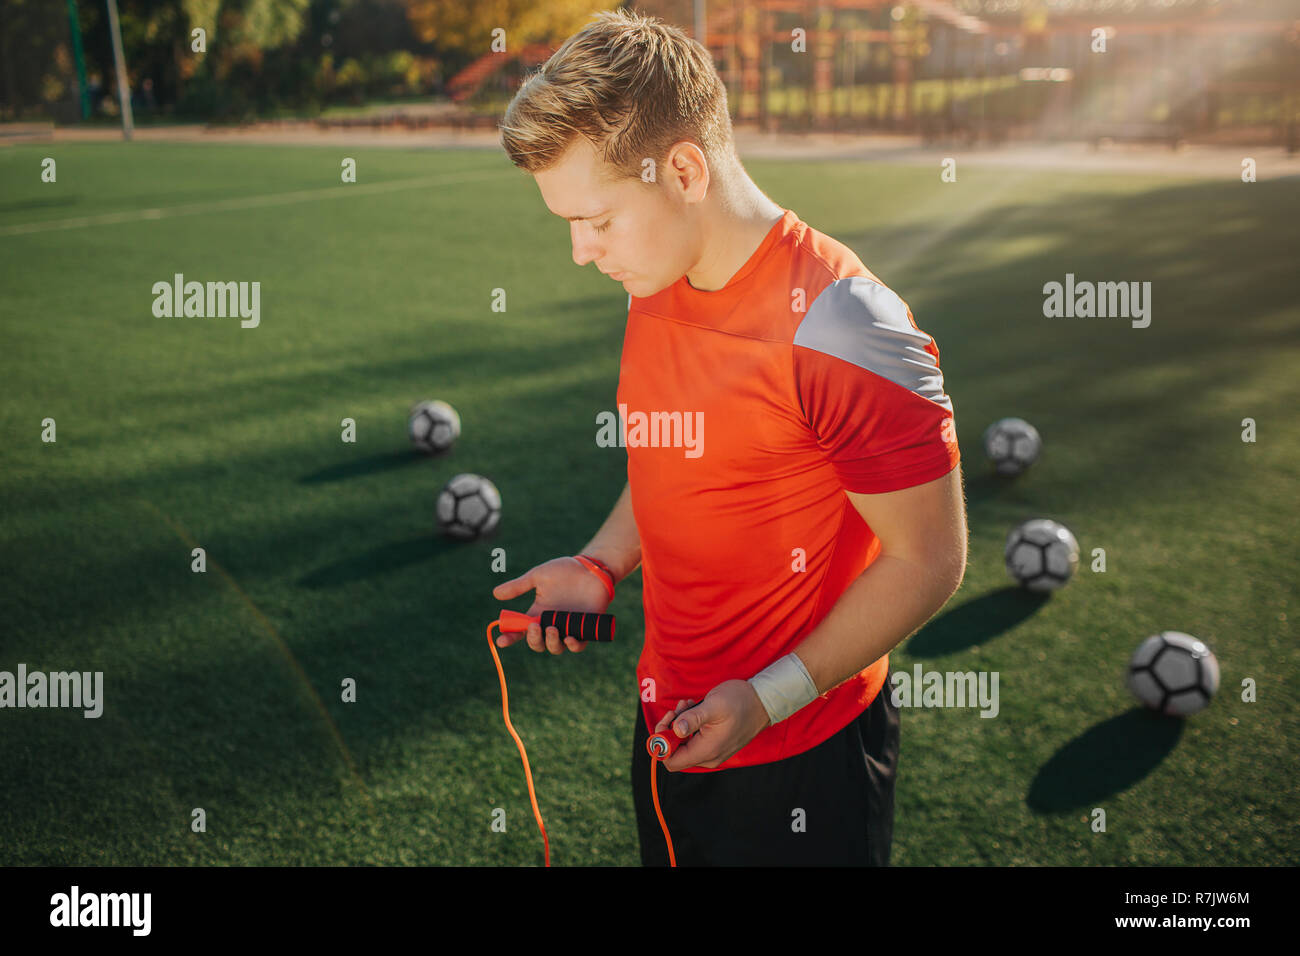 Young man in sport uniform is ready to exercise using jump rope. He looks down. Guy stand on green lawn. Five football balls are behind. - Stock Image